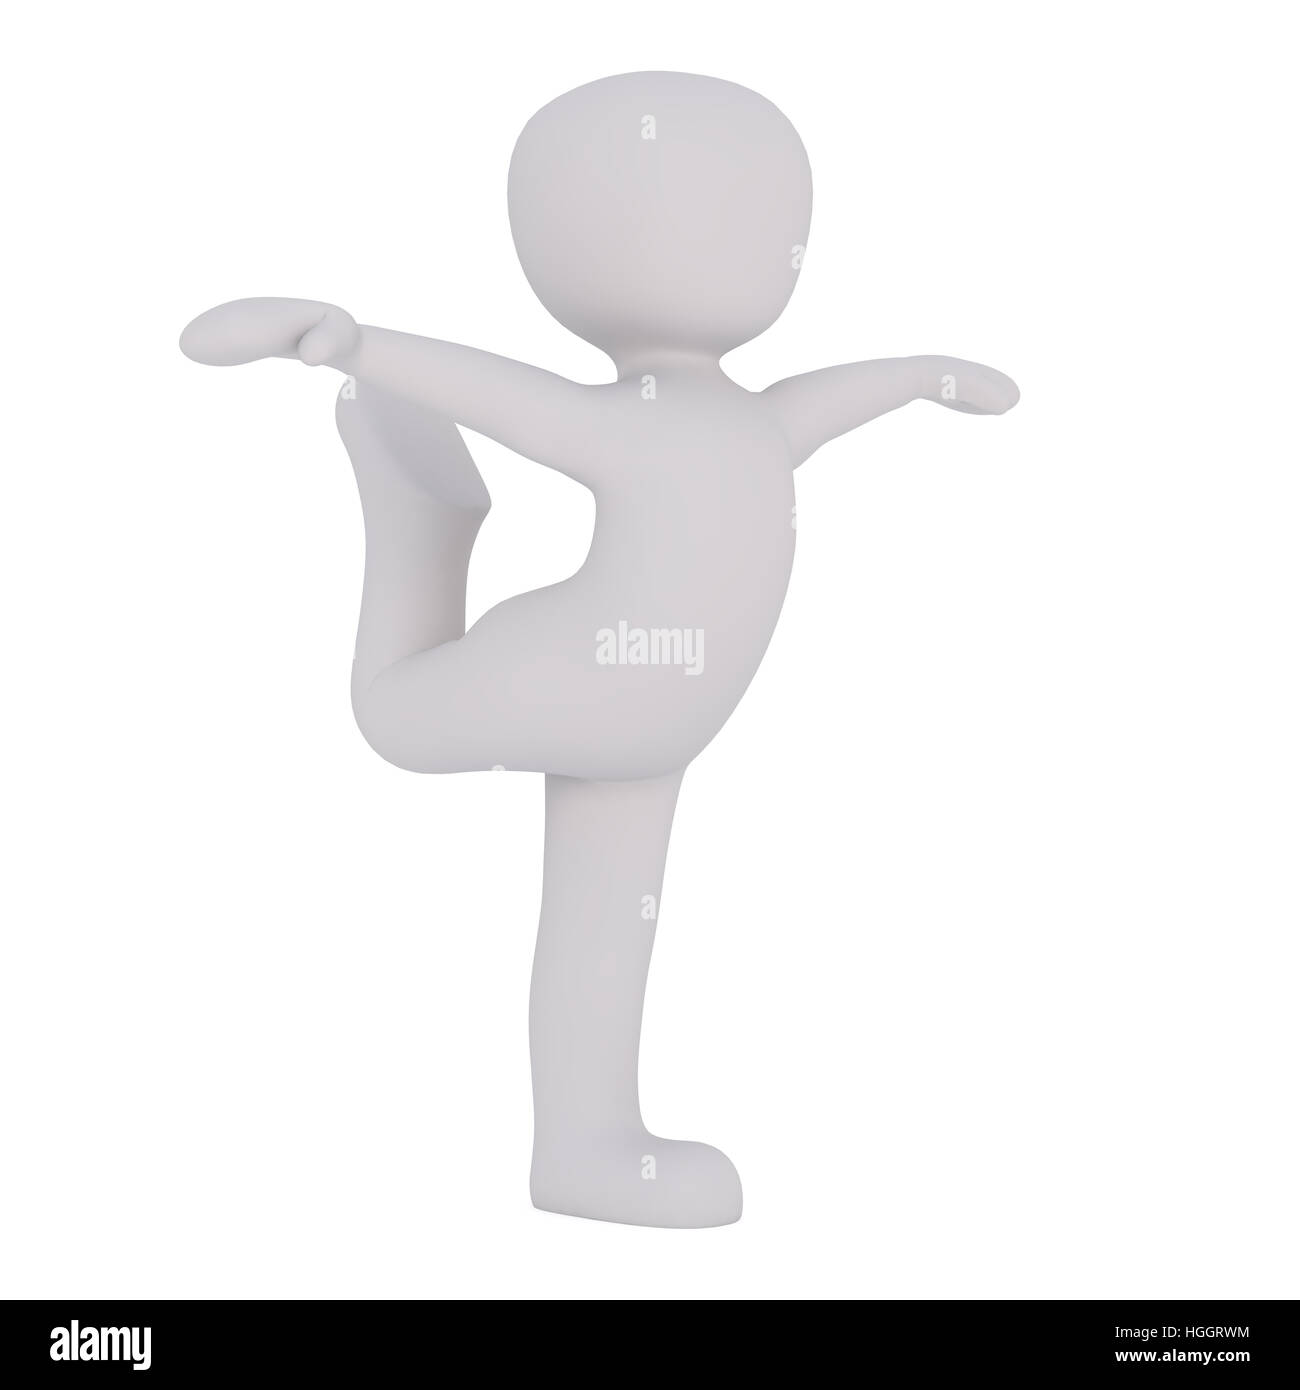 3d Rendering of Cartoon Figure Dancing in Elegant Pose with Bent Leg and Extended Arms in front of White Background Stock Photo